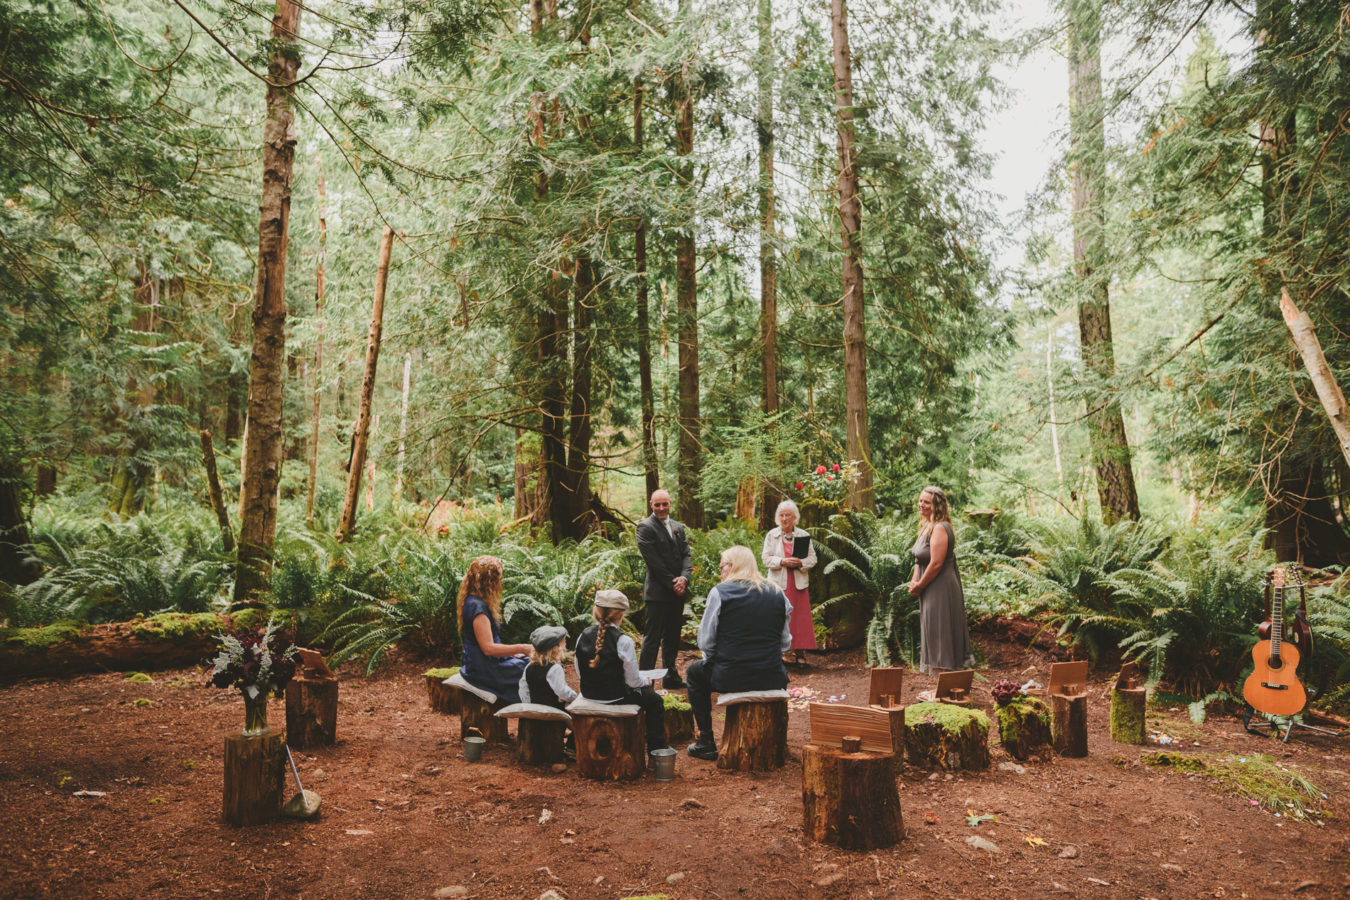 intimate wedding ceremony in the forest